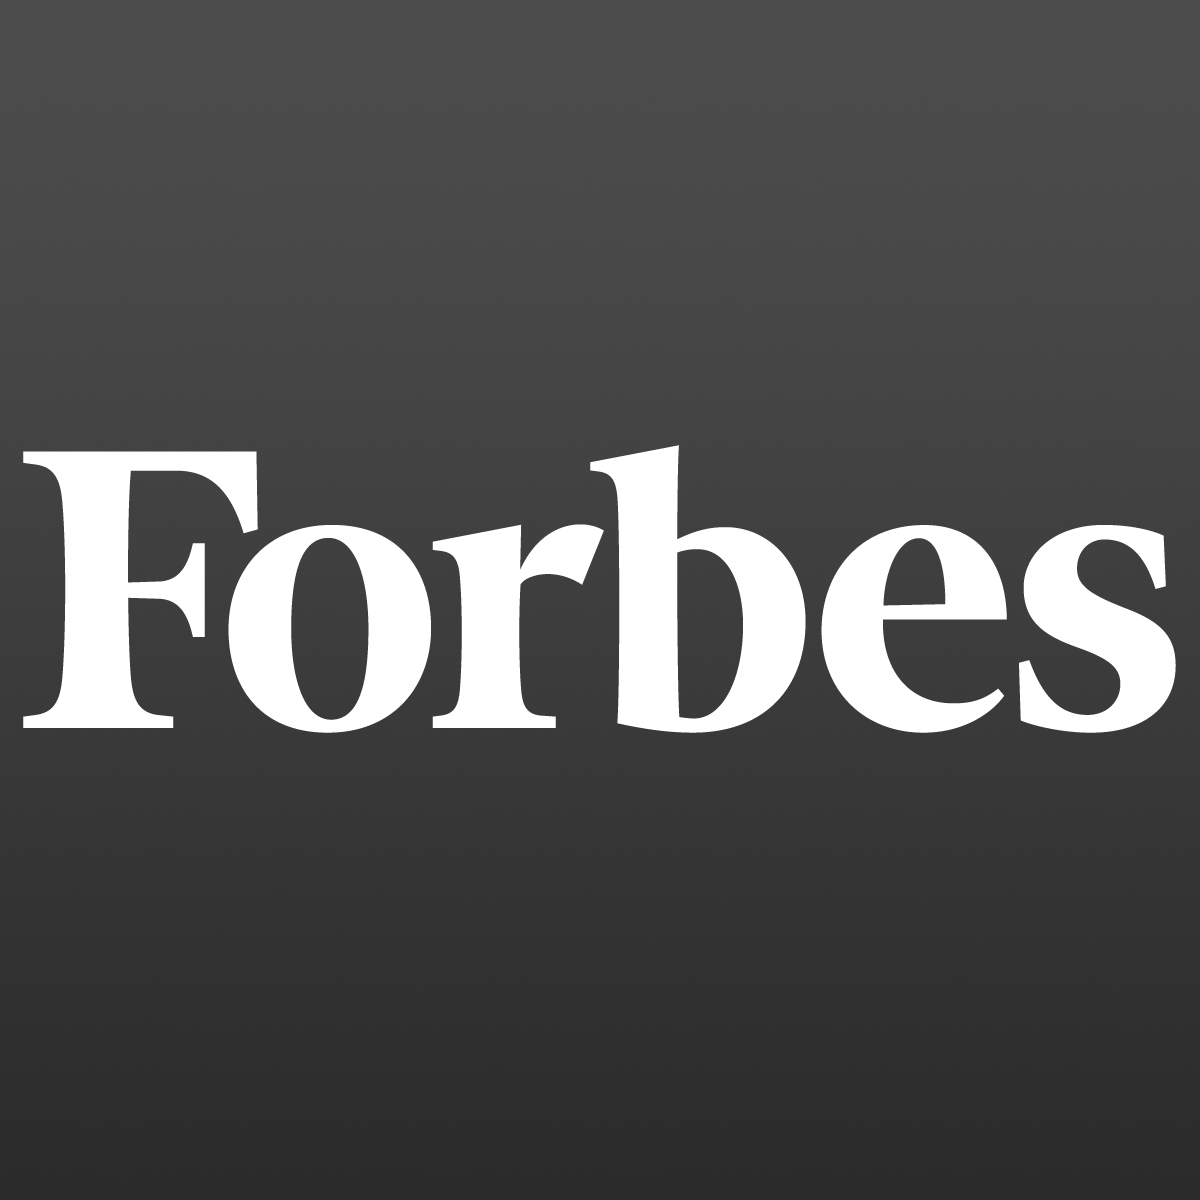 Forbes Best Places To Work 2020 15 Of The Best Luxury Travel Experiences For 2019, 2020 And Beyond